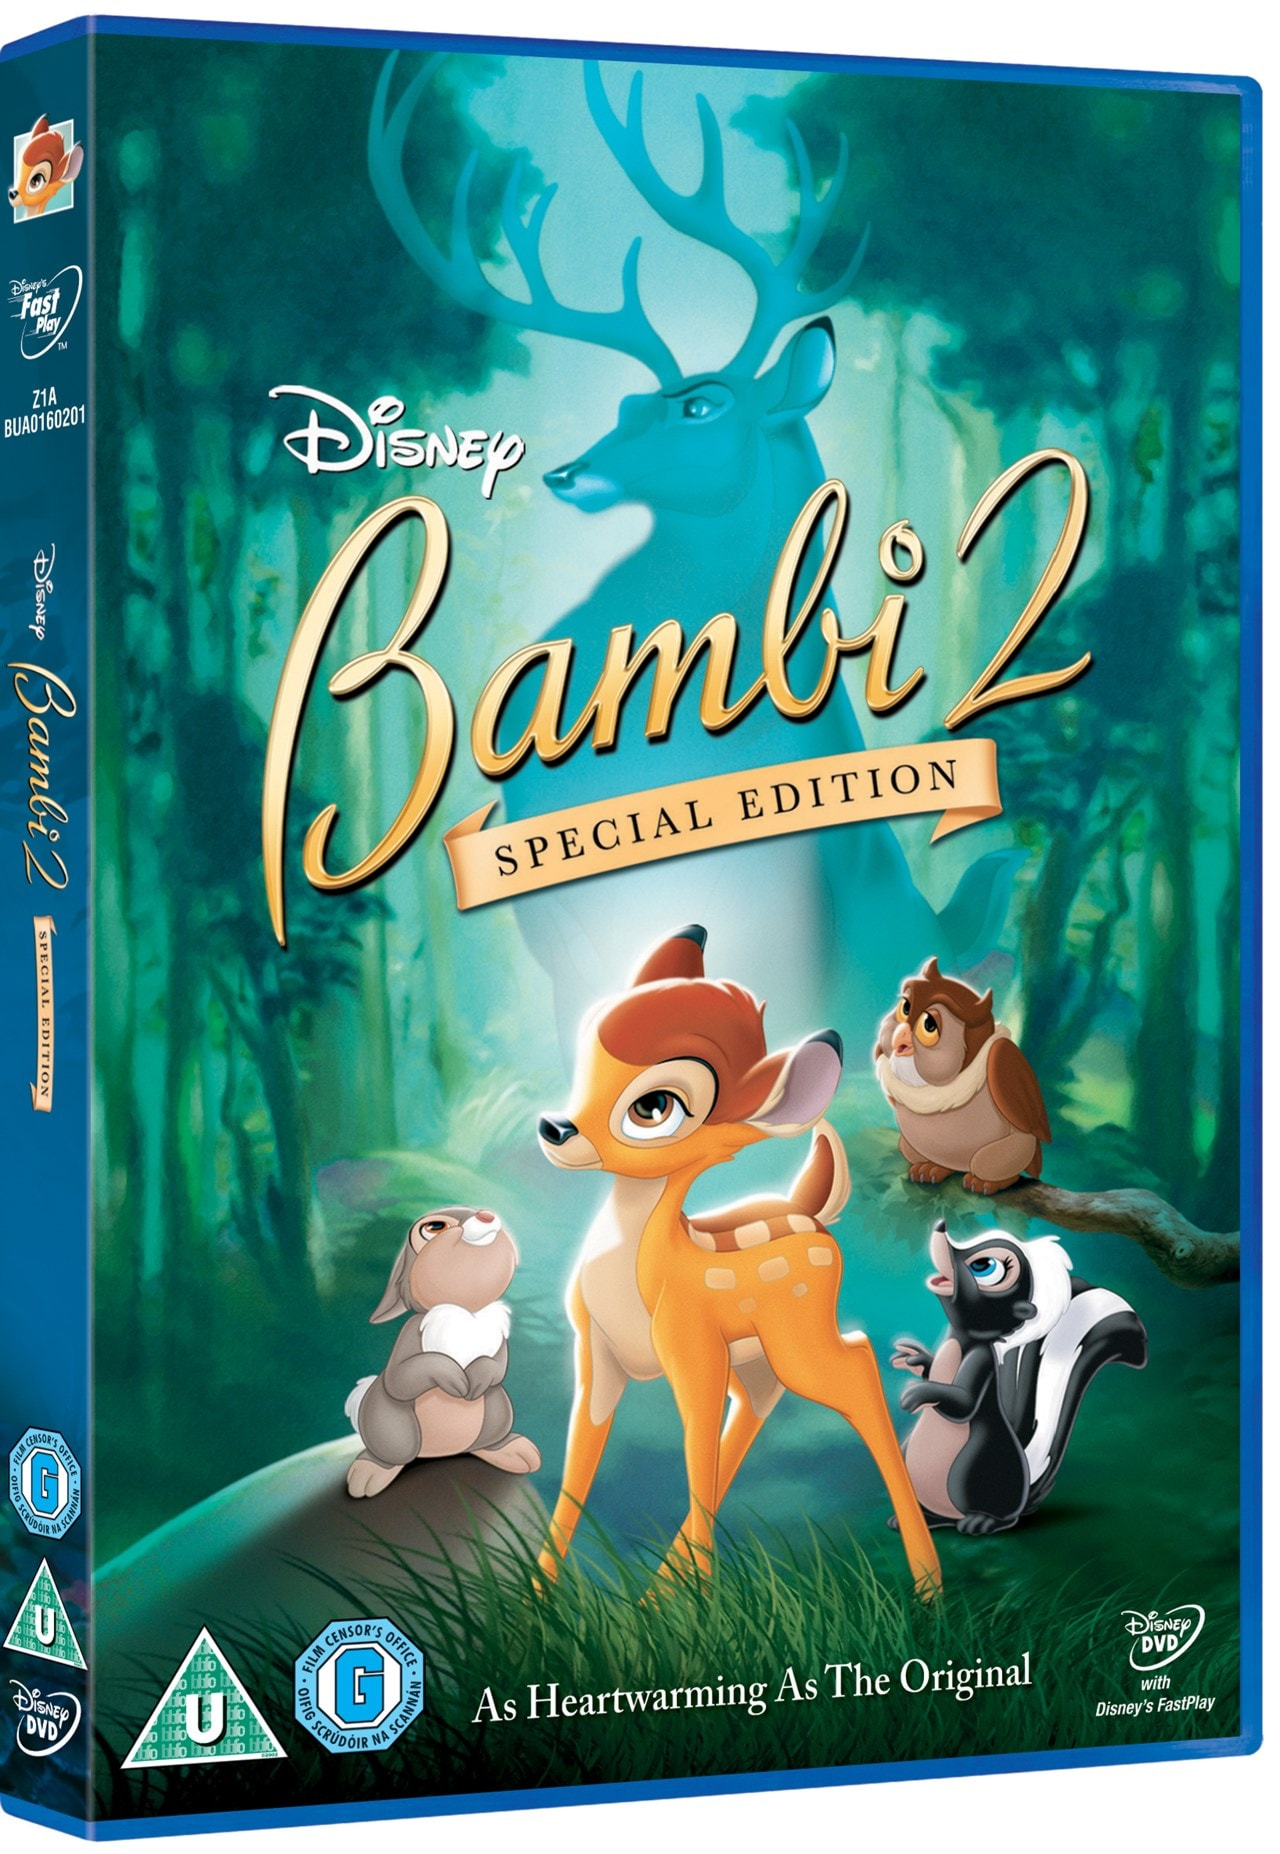 Bambi 2 - The Great Prince of the Forest - 2